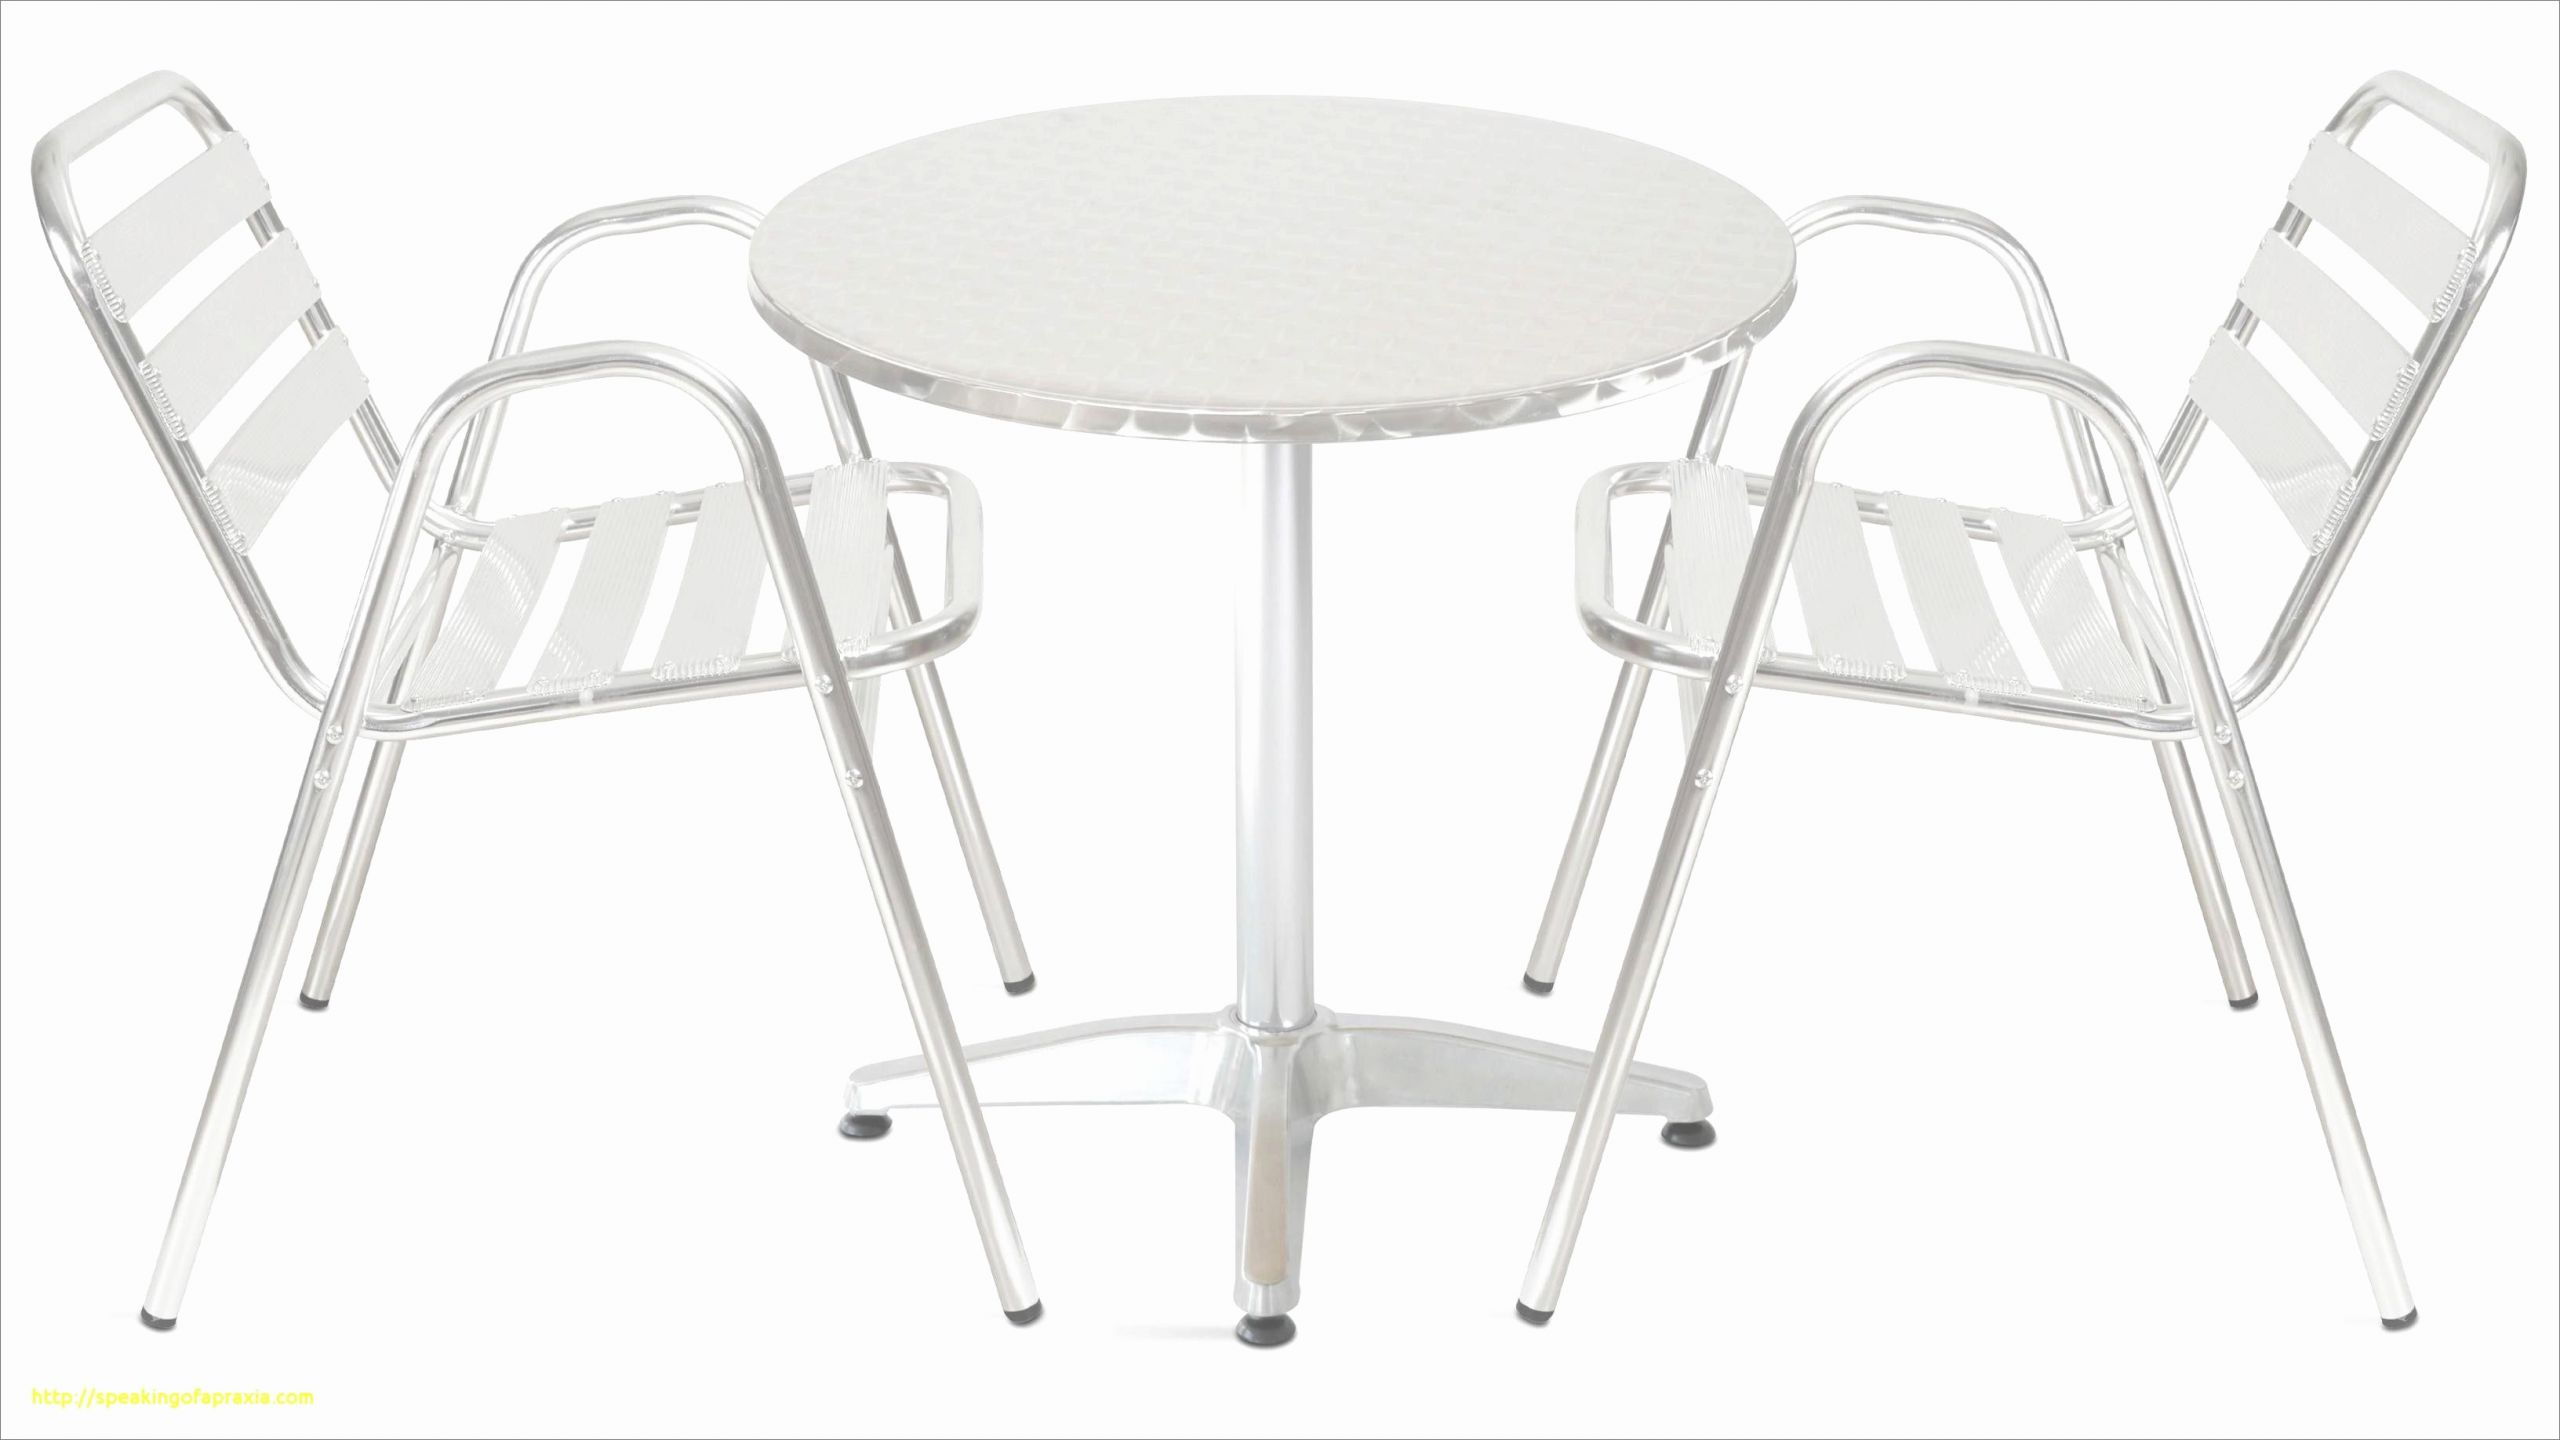 table de massage pliante pas cher impressionnant table et banc pliant carrefour awesome table de jardin pliante of table de massage pliante pas cher